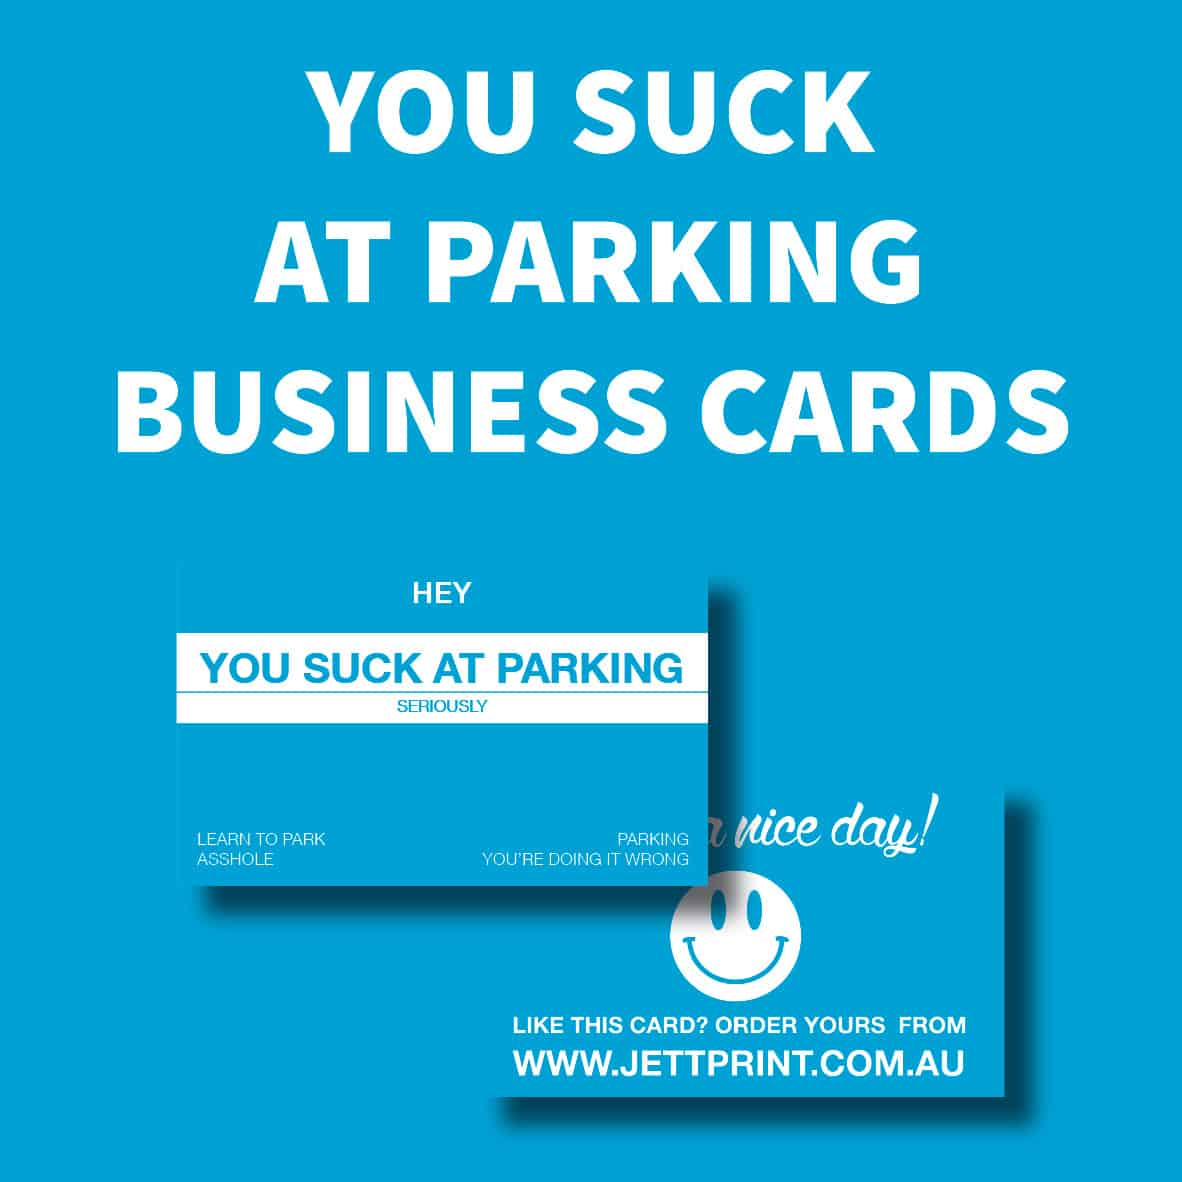 you-suck-at-parking-business-cards-printing-springfield-ipswich-brisbane22